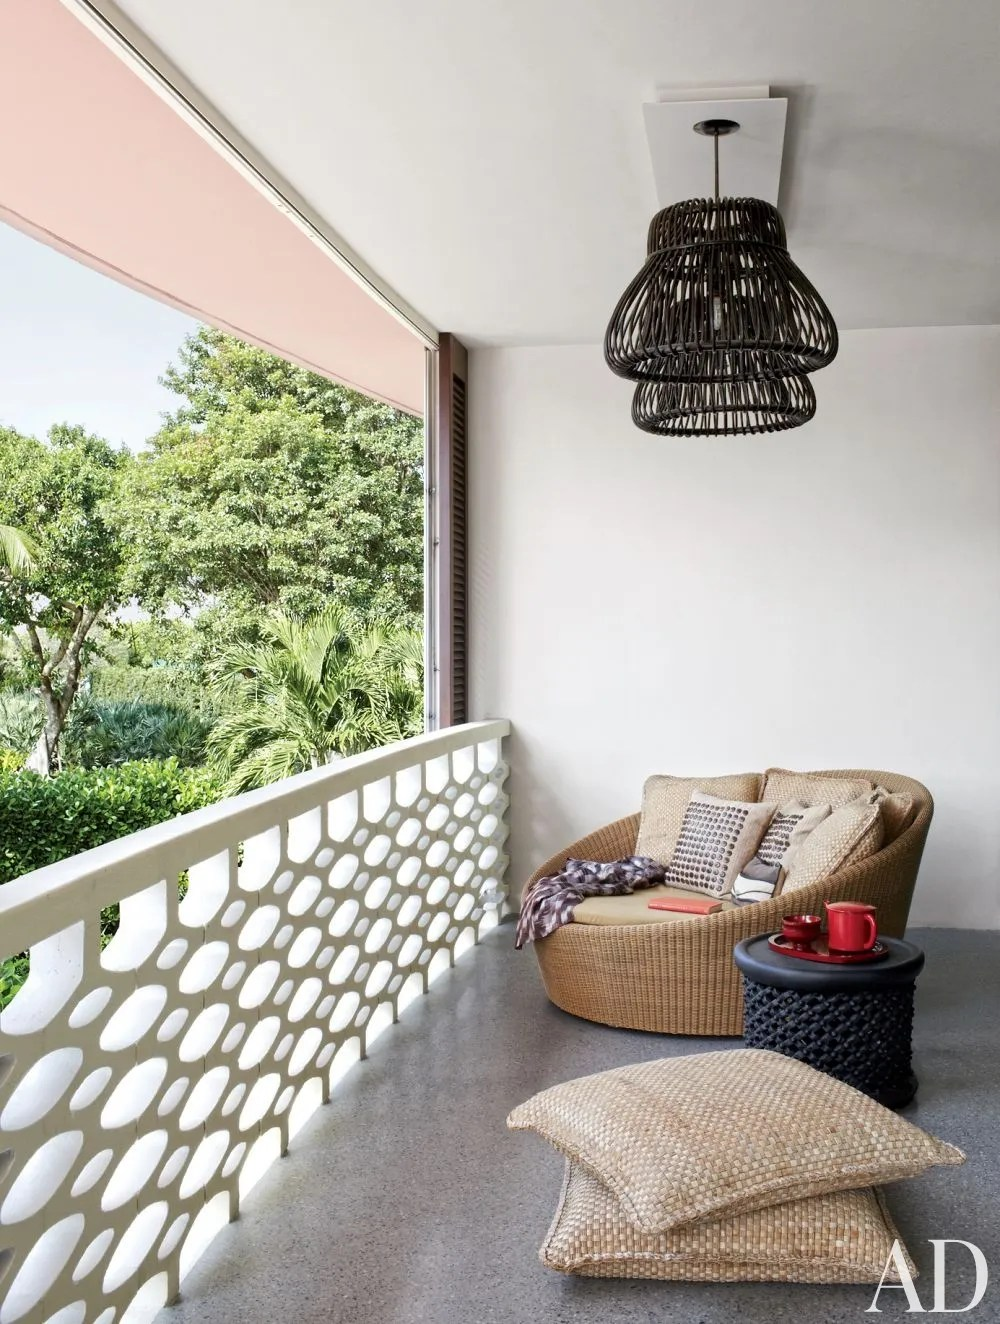 Balcon Design 14 Cozy Balcony Ideas And Decor Inspiration Architectural Digest